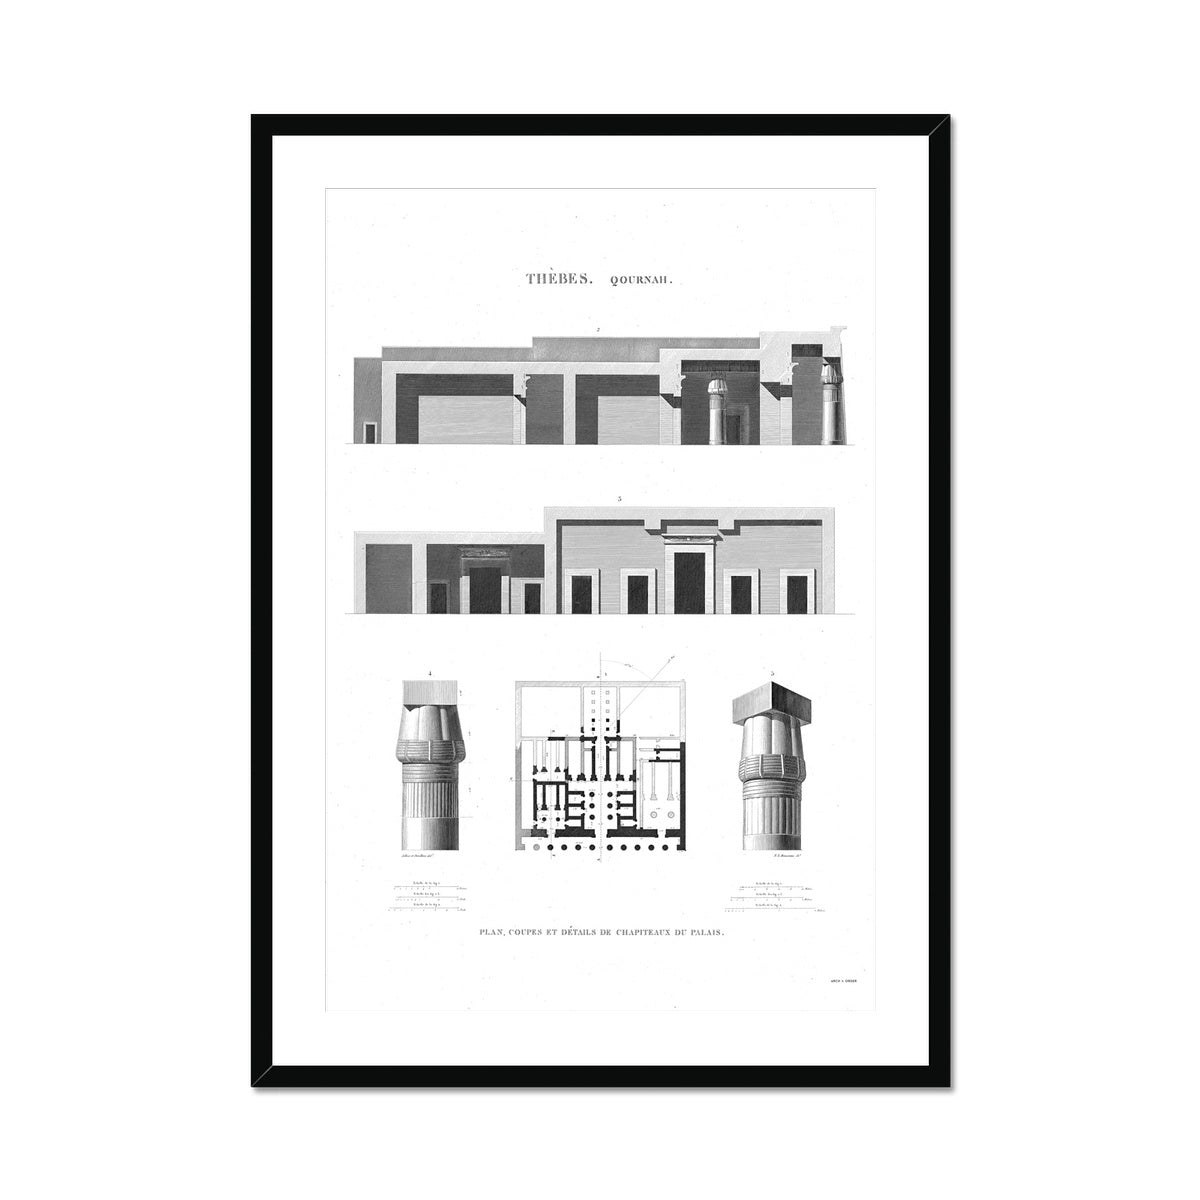 Capitals of the Palace - Qournah - Thebes Egypt -  Framed & Mounted Print